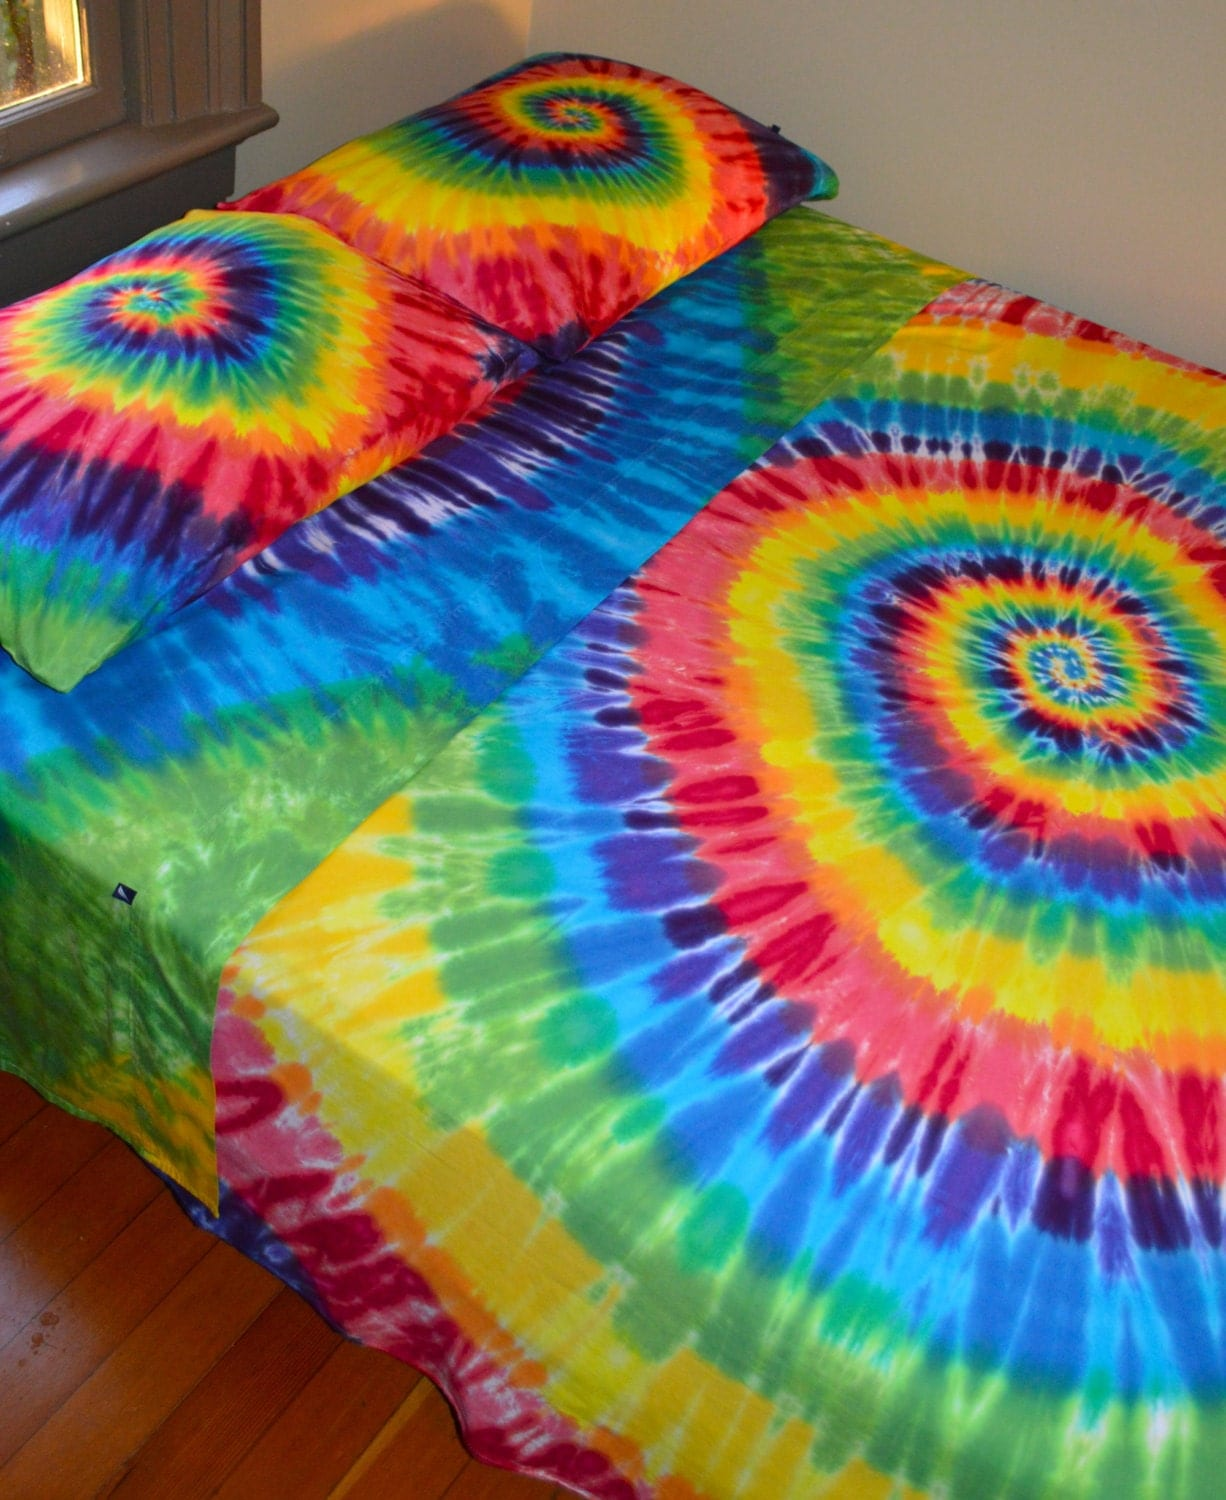 Hand Dyed Queen Sheet Set In Vibrant Rainbow Tie Dye Colors